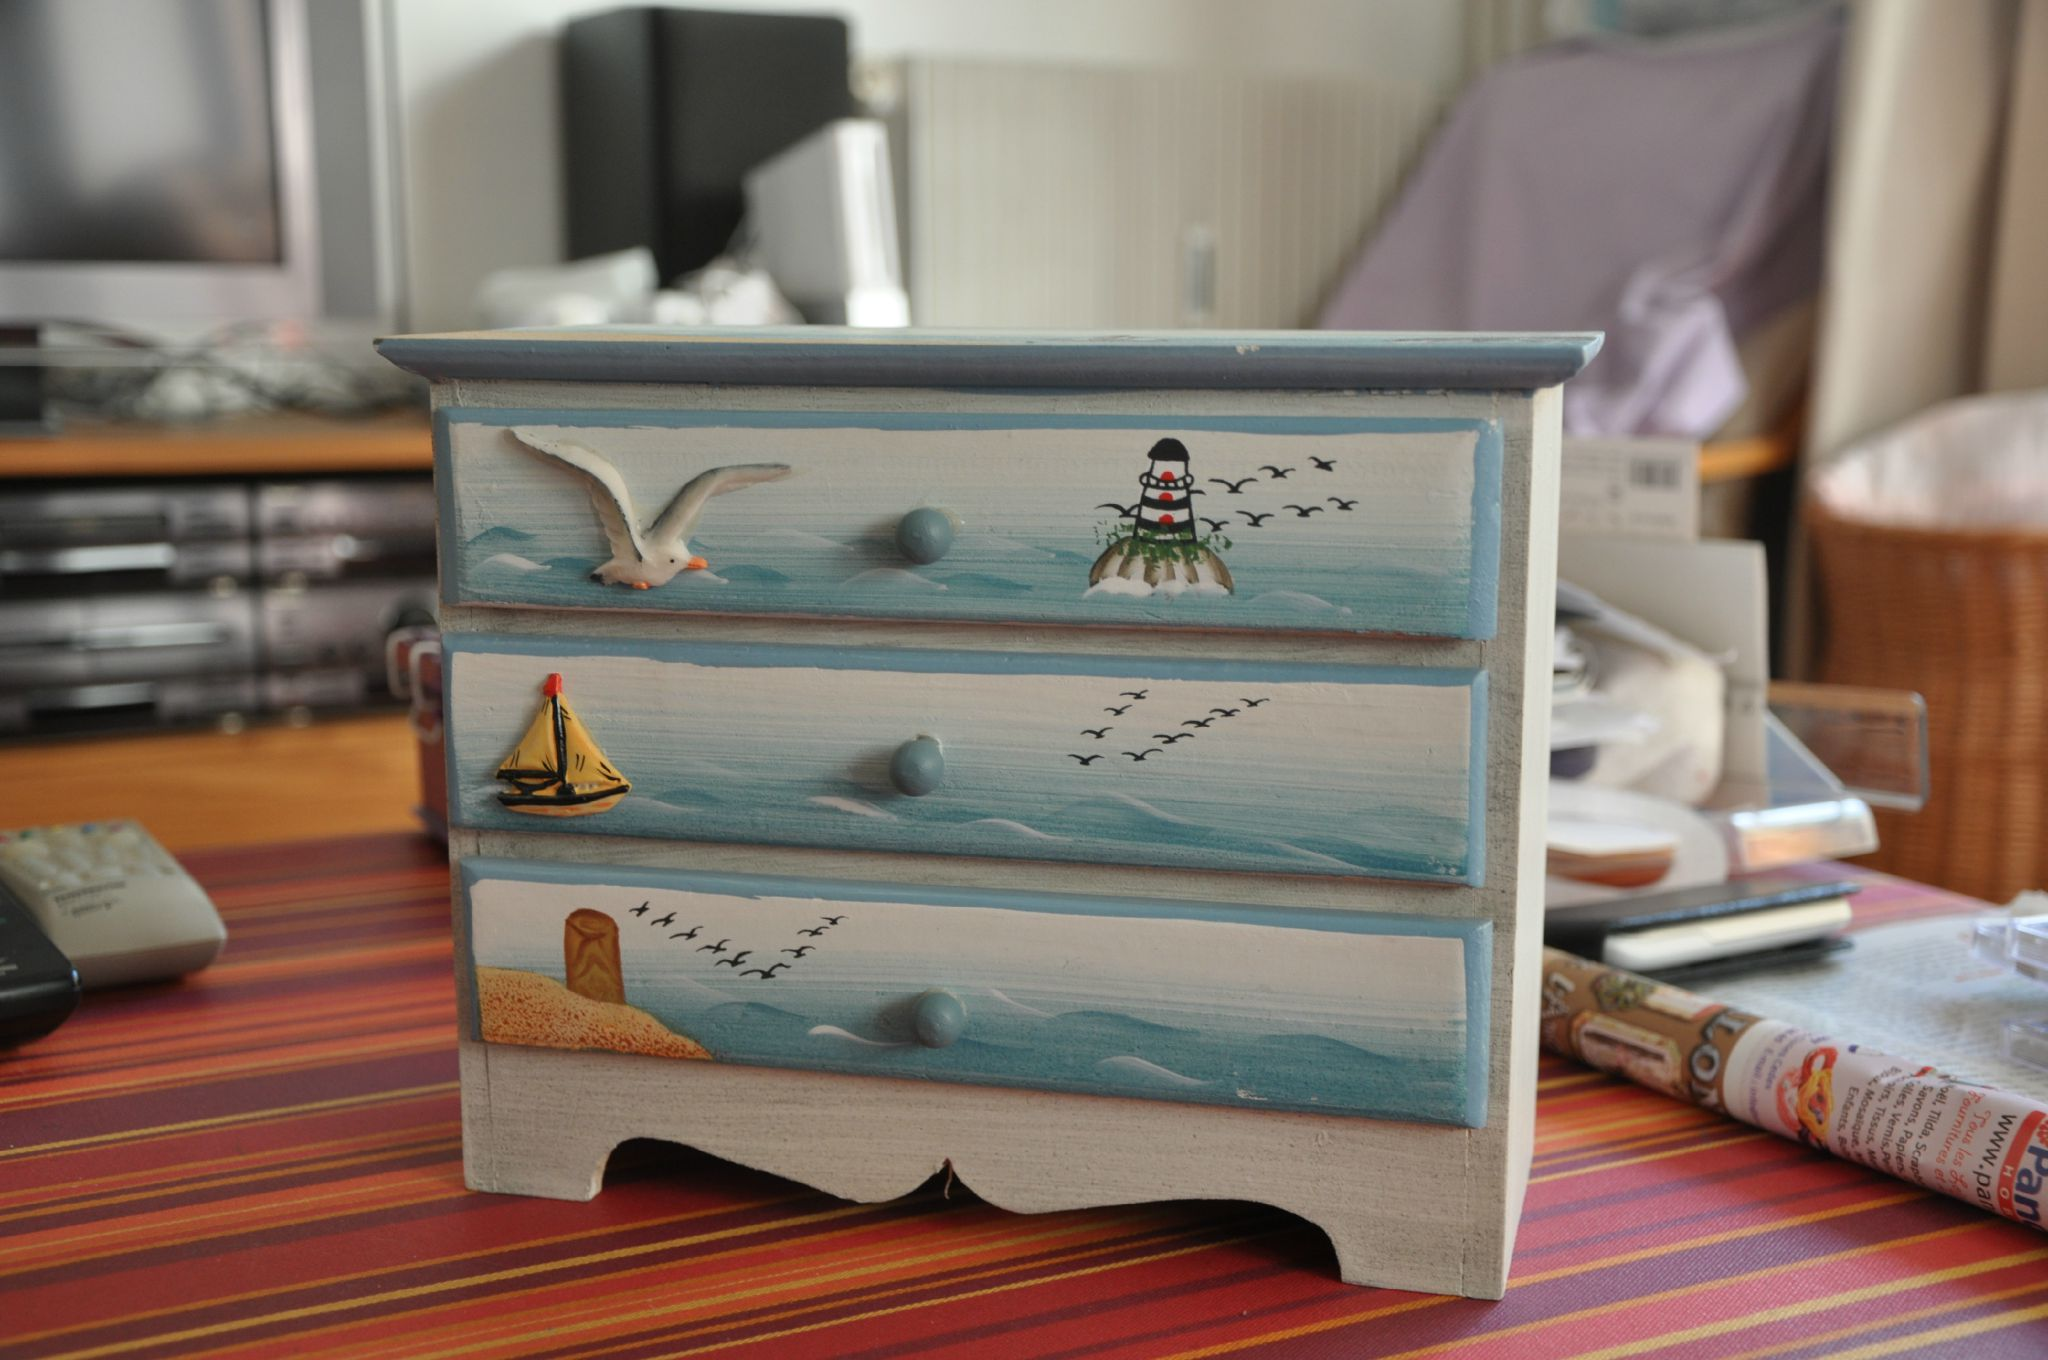 Des meubles customiser le bazar de seraphine for Customiser un meuble bureau